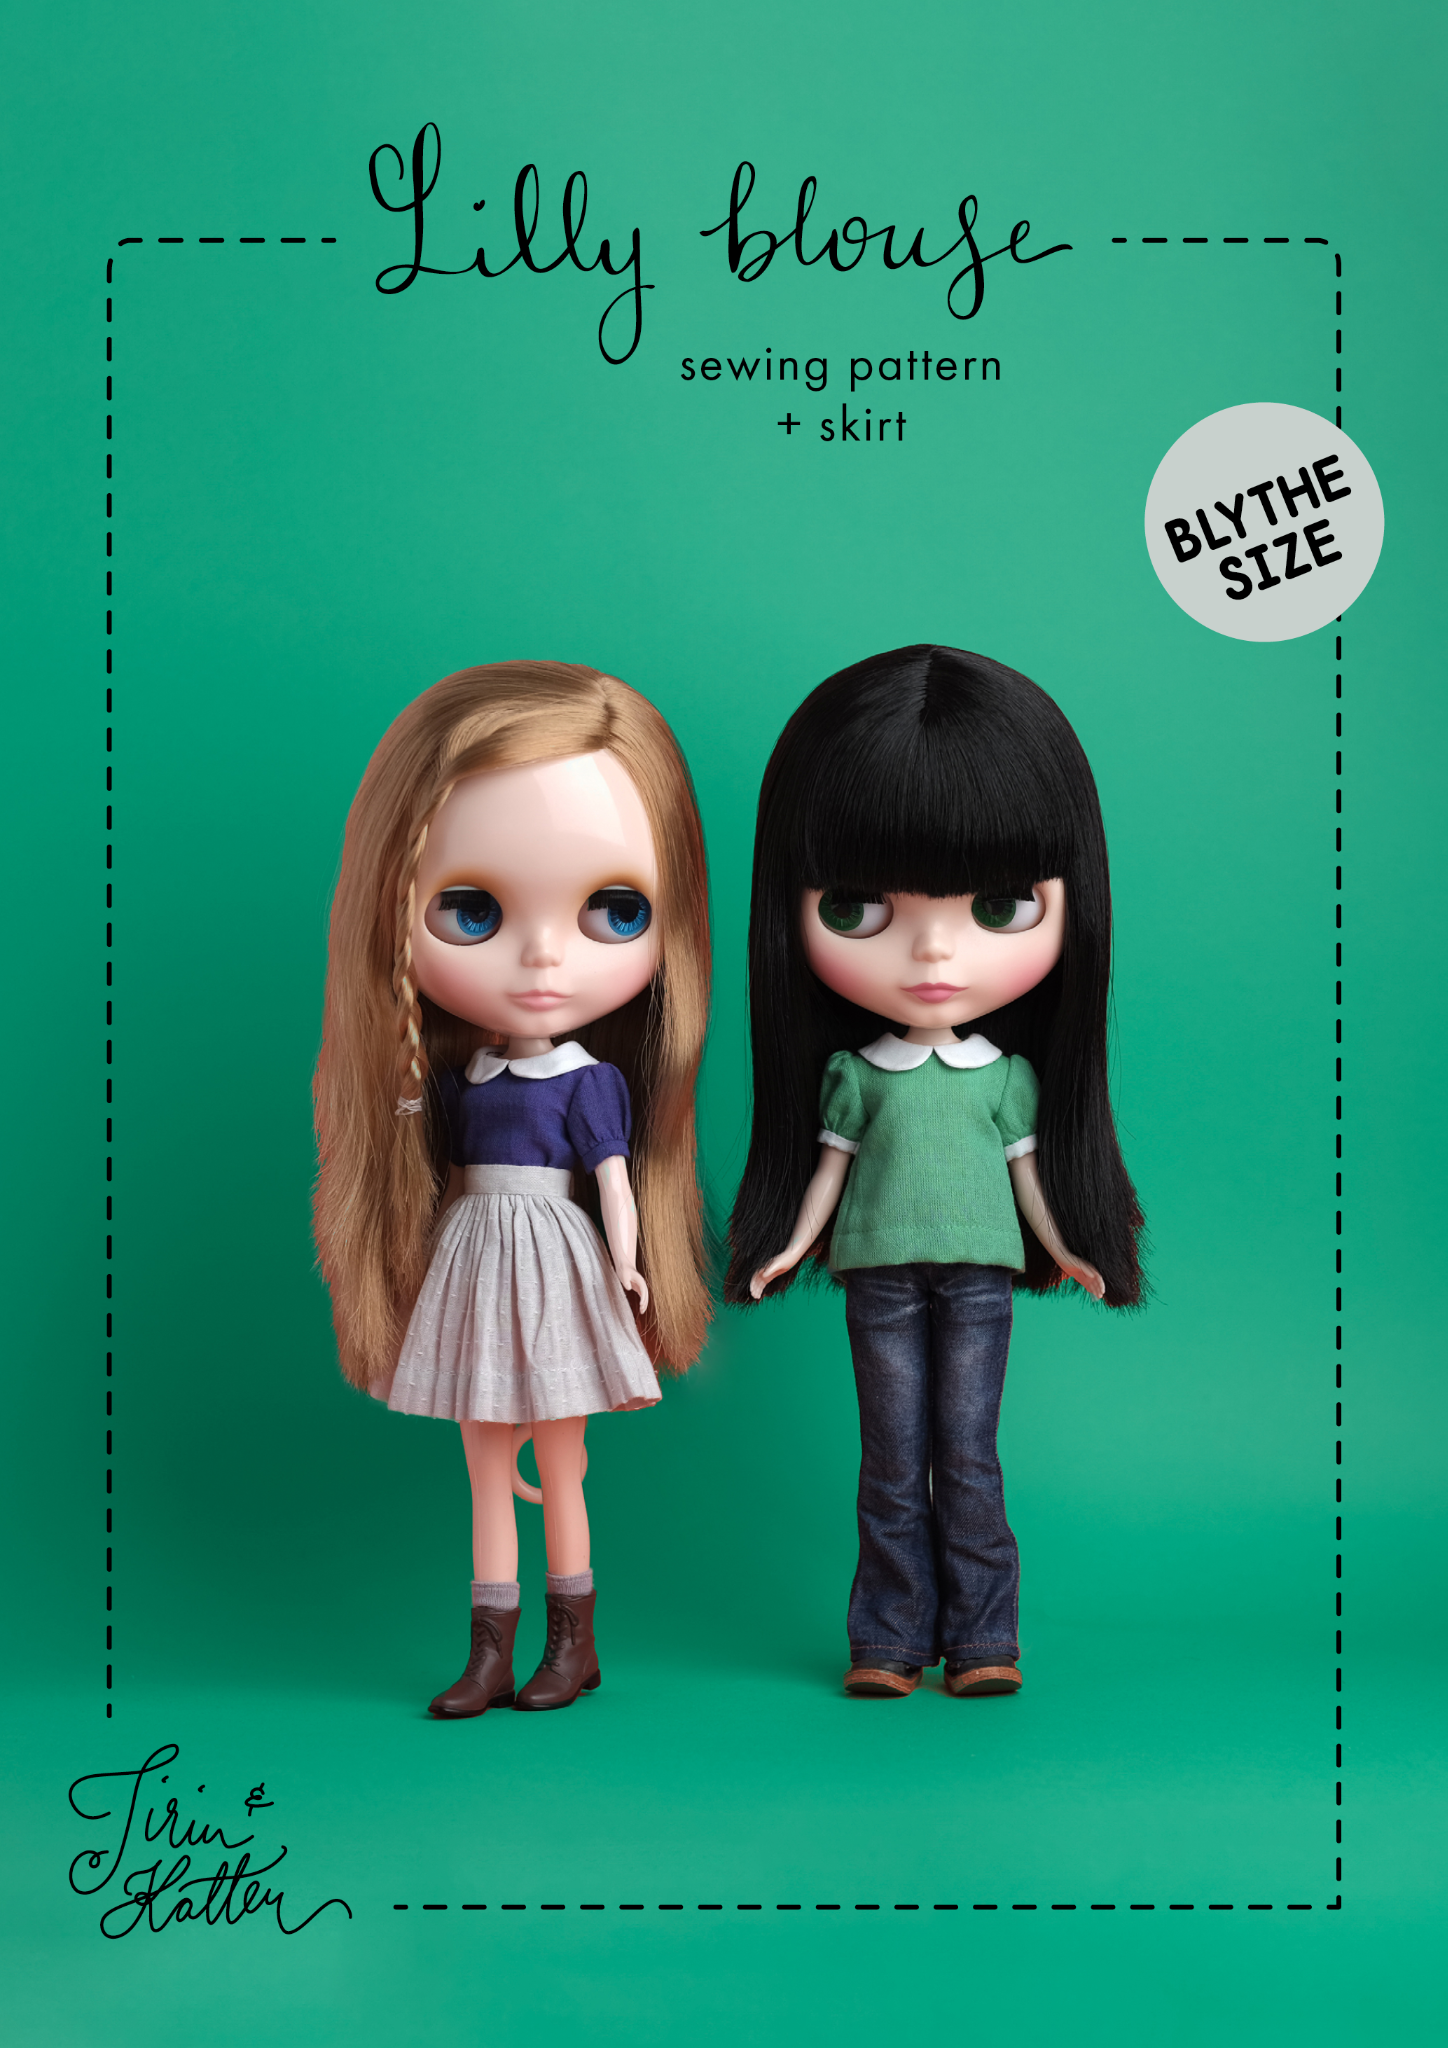 Sewing pattern: Lilly blouse + skirt for Blythe dolls, intermediate level, PDF download